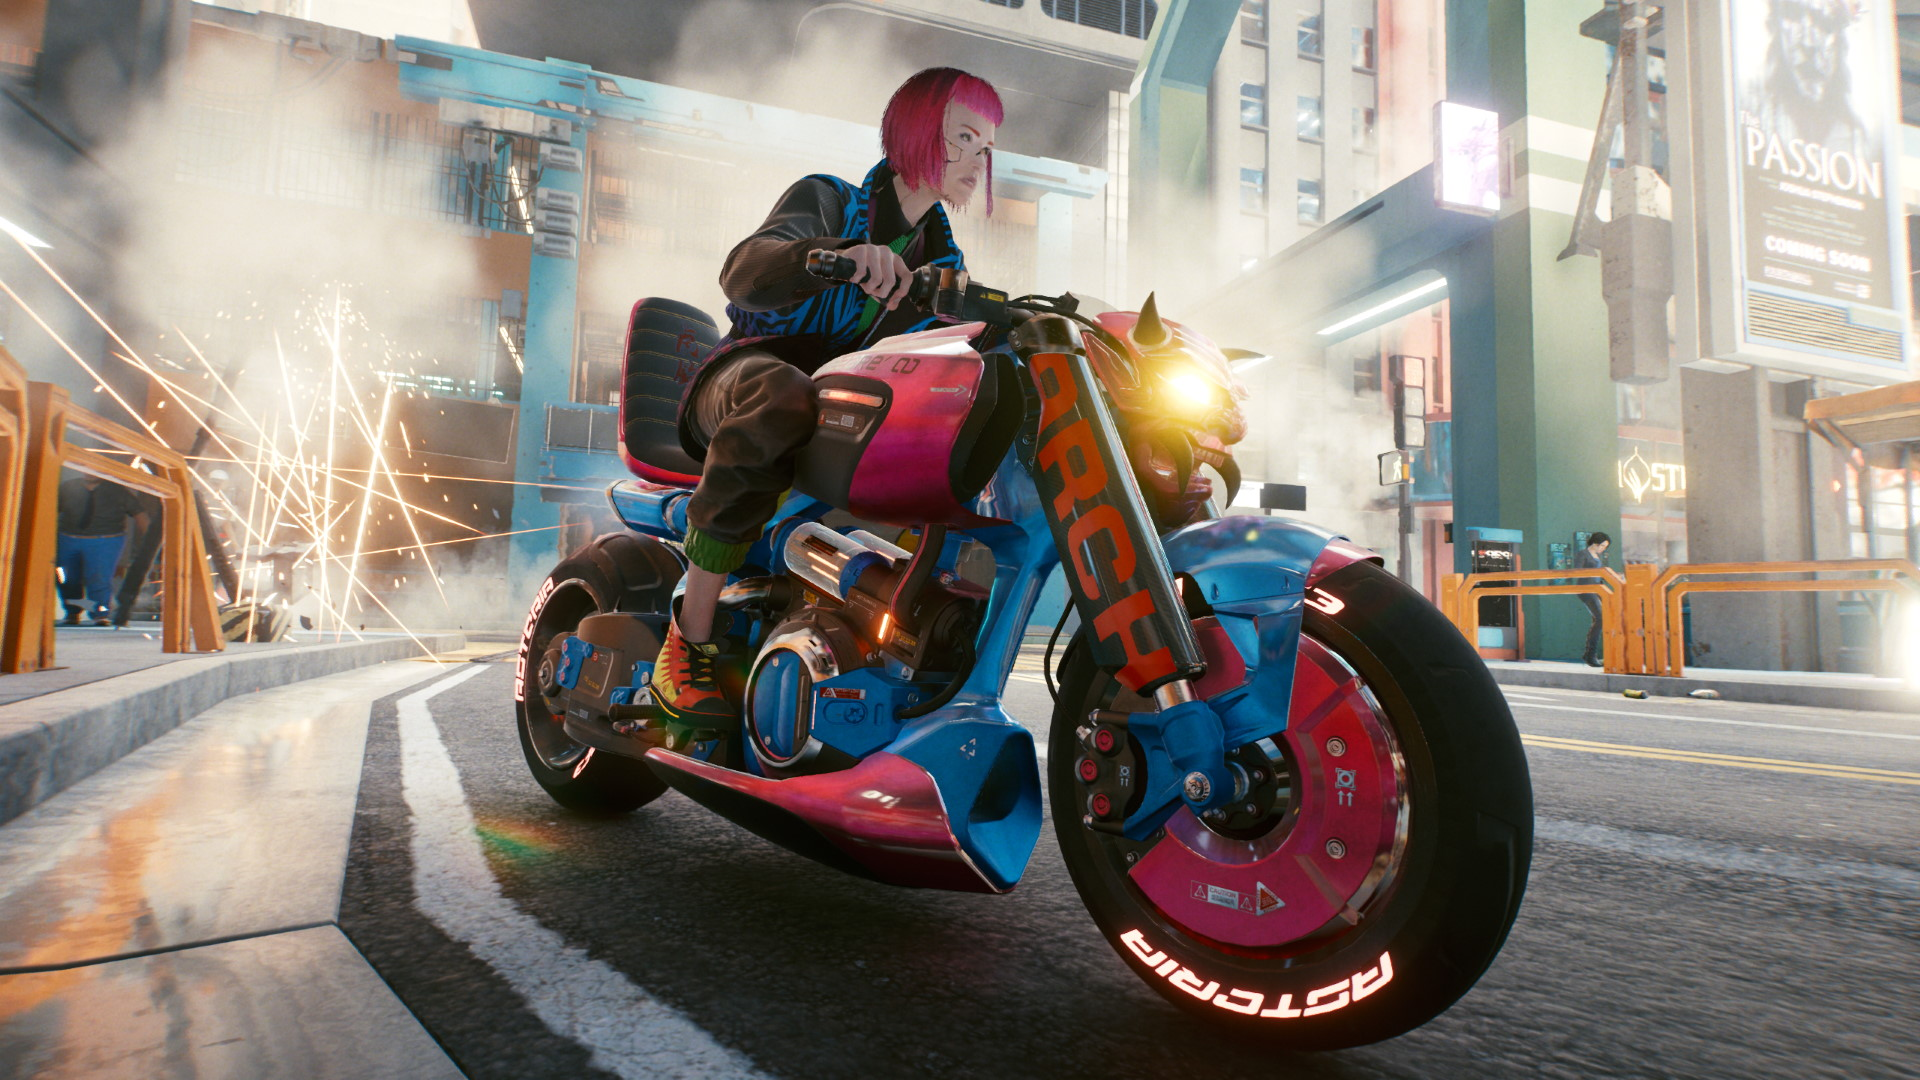 A screenshot of V riding a motorcycle with demon headlights in Cyberpunk 2077